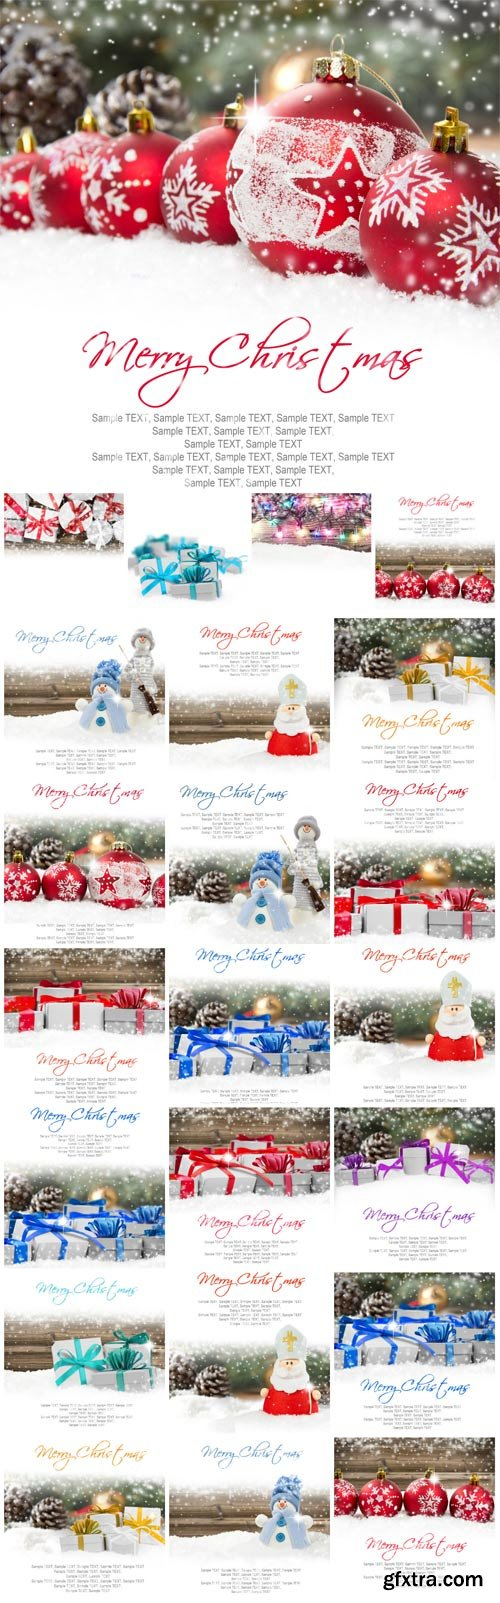 New Year and Christmas stock photos №15